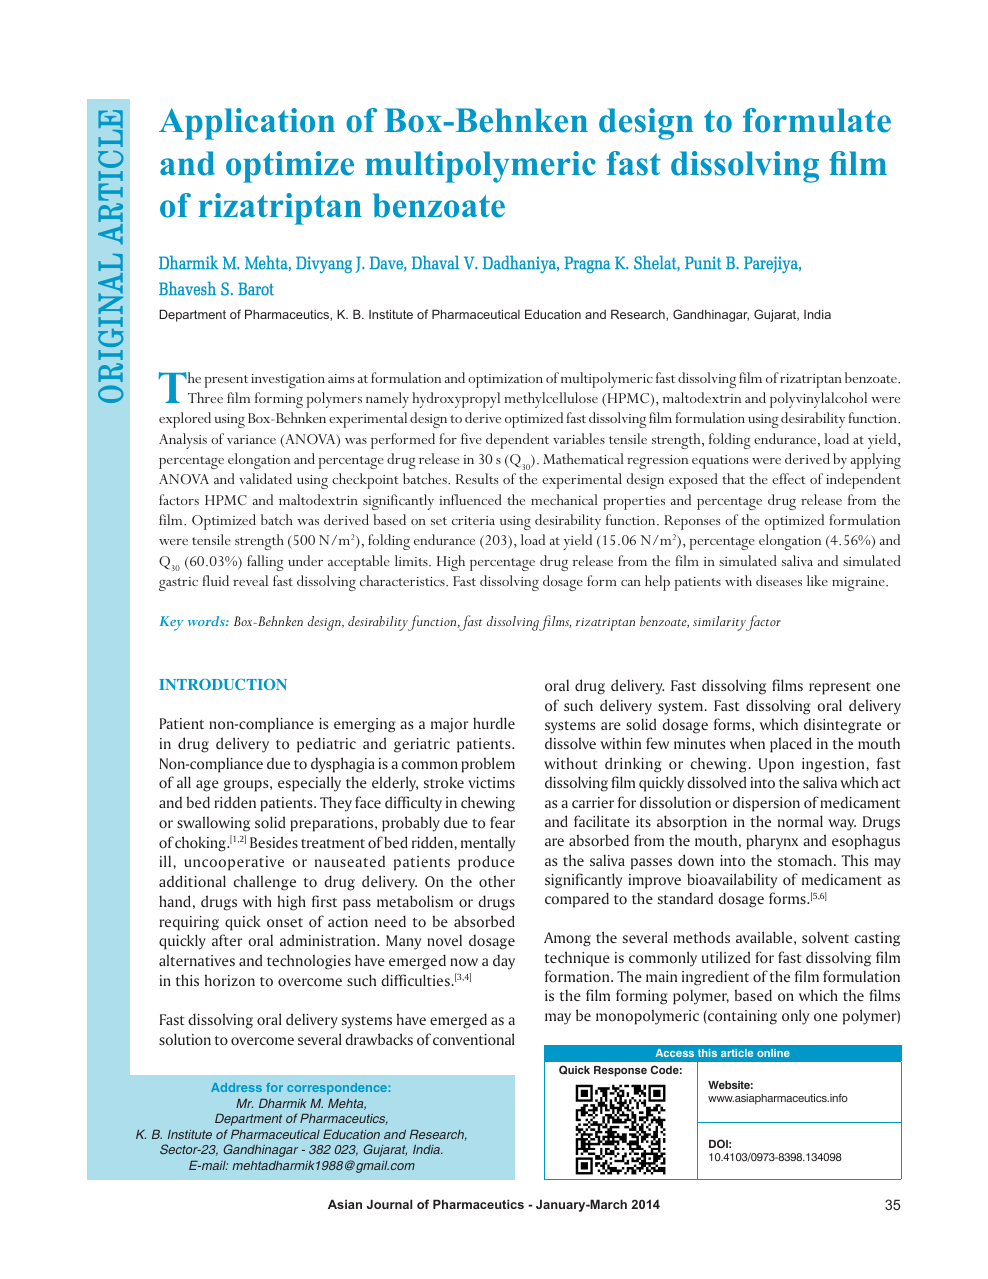 Application Of Box Behnken Design To Formulate And Optimize Multipolymeric Fast Dissolving Film Of Rizatriptan Benzoate Topic Of Research Paper In Nano Technology Download Scholarly Article Pdf And Read For Free On Cyberleninka